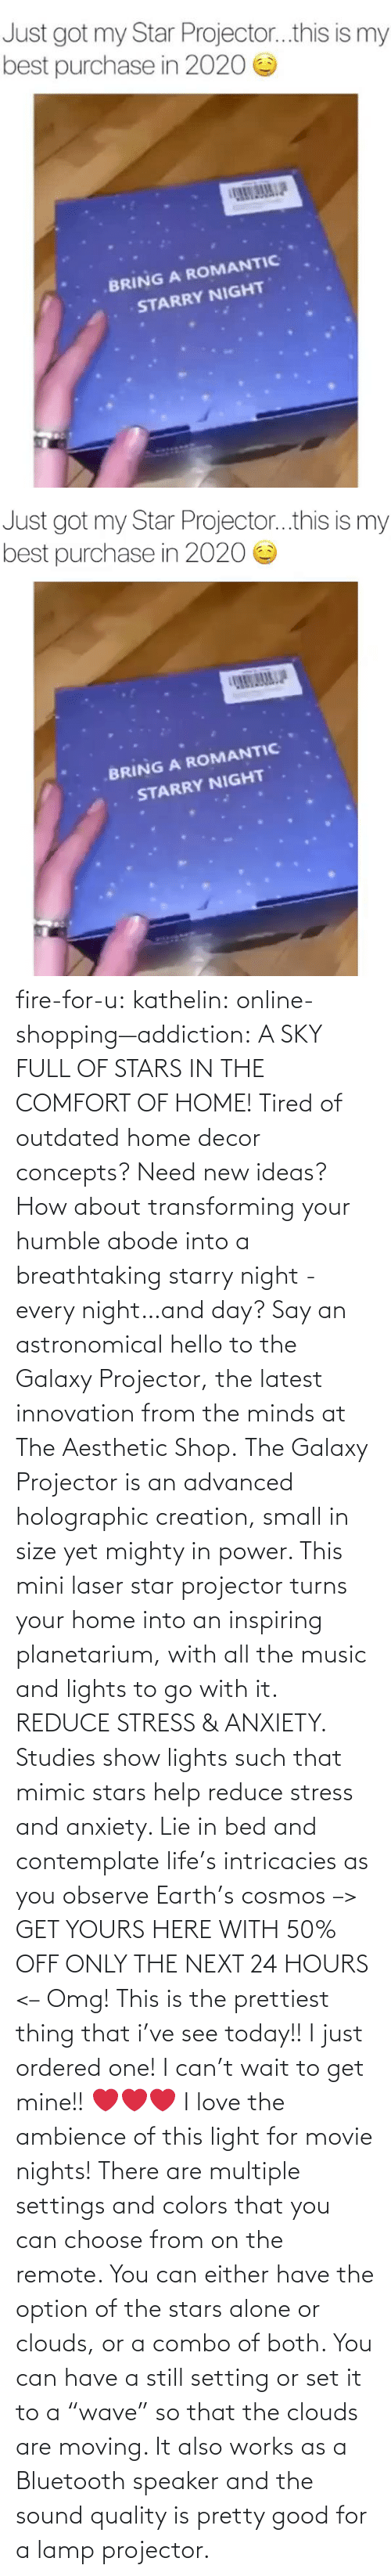 "Múltiple: fire-for-u:  kathelin: online-shopping—addiction:  A SKY FULL OF STARS IN THE COMFORT OF HOME! Tired of outdated home decor concepts? Need new ideas? How about transforming your humble abode into a breathtaking starry night - every night…and day? Say an astronomical hello to the Galaxy Projector, the latest innovation from the minds at The Aesthetic Shop. The Galaxy Projector is an advanced holographic creation, small in size yet mighty in power. This mini laser star projector turns your home into an inspiring planetarium, with all the music and lights to go with it. REDUCE STRESS & ANXIETY. Studies show lights such that mimic stars help reduce stress and anxiety. Lie in bed and contemplate life's intricacies as you observe Earth's cosmos  –> GET YOURS HERE WITH 50% OFF ONLY THE NEXT 24 HOURS <–   Omg! This is the prettiest thing that i've see today!! I just ordered one! I can't wait to get mine!! ❤️️❤️️❤️️  I love the ambience of this light for movie nights! There are multiple settings and colors that you can choose from on the remote. You can either have the option of the stars alone or clouds, or a combo of both. You can have a still setting or set it to a ""wave"" so that the clouds are moving. It also works as a Bluetooth speaker and the sound quality is pretty good for a lamp projector."